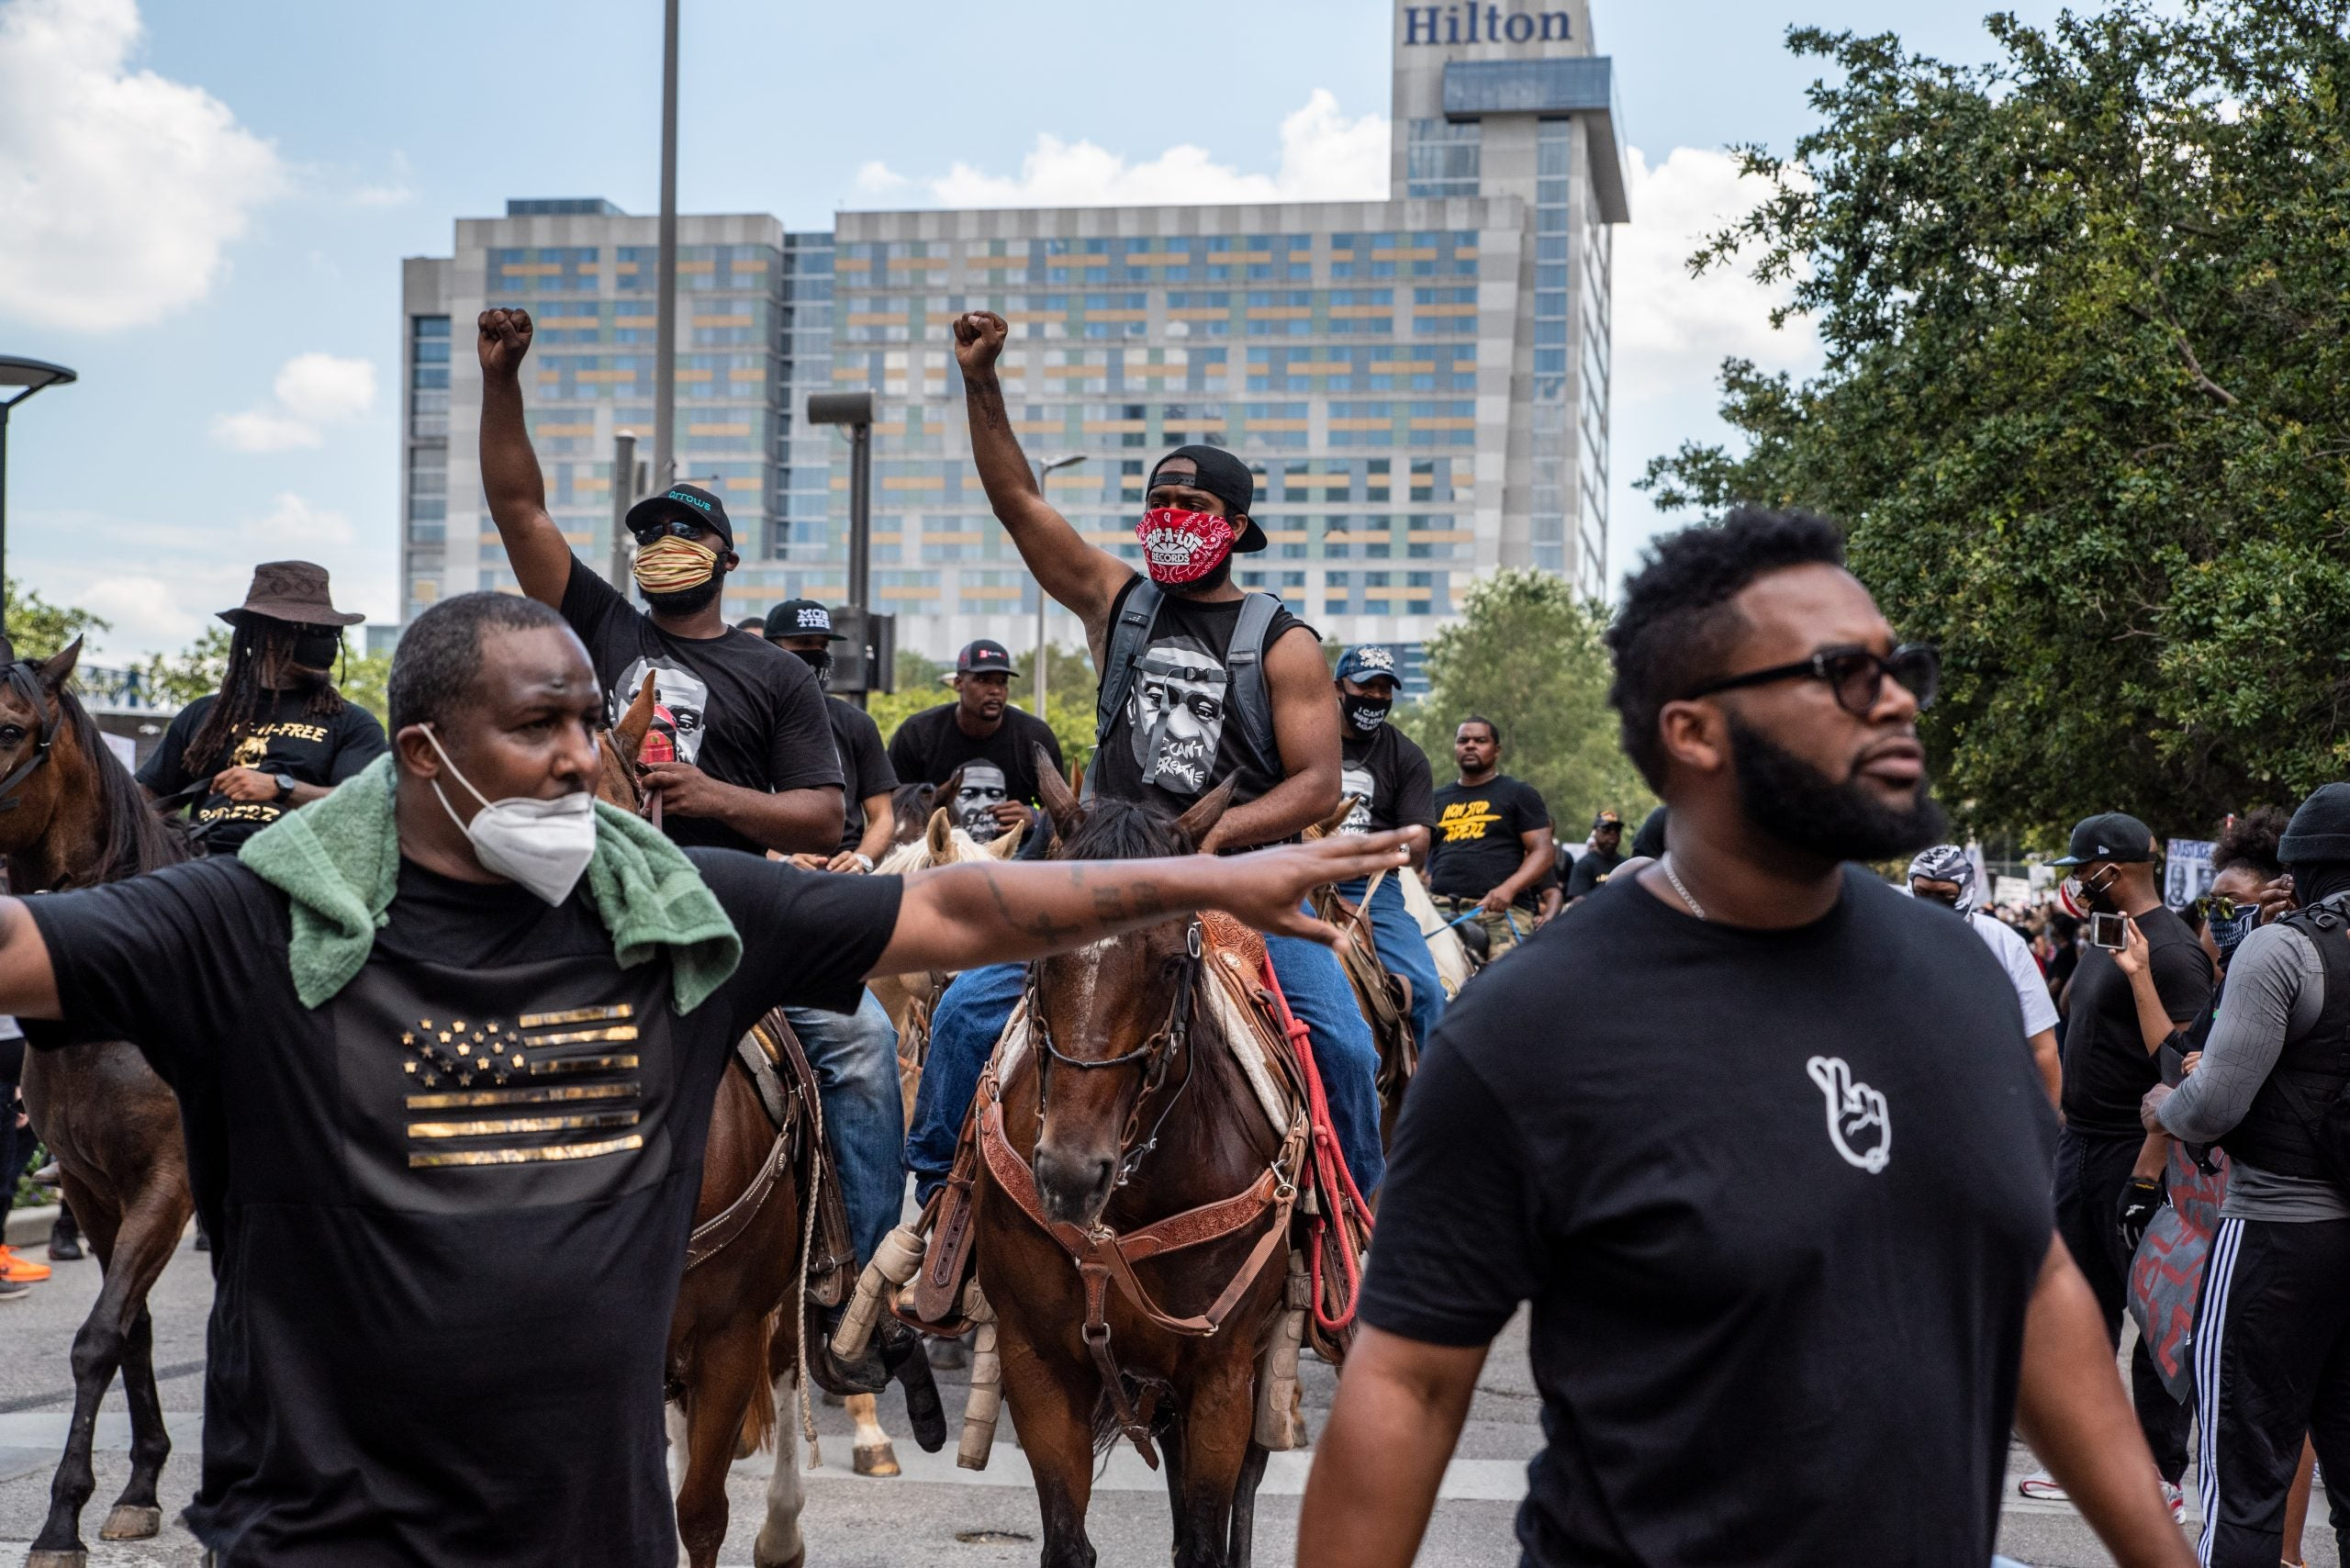 Protesters in Texas. Justin Howell was critically injured by Austin police during a rally in the city.